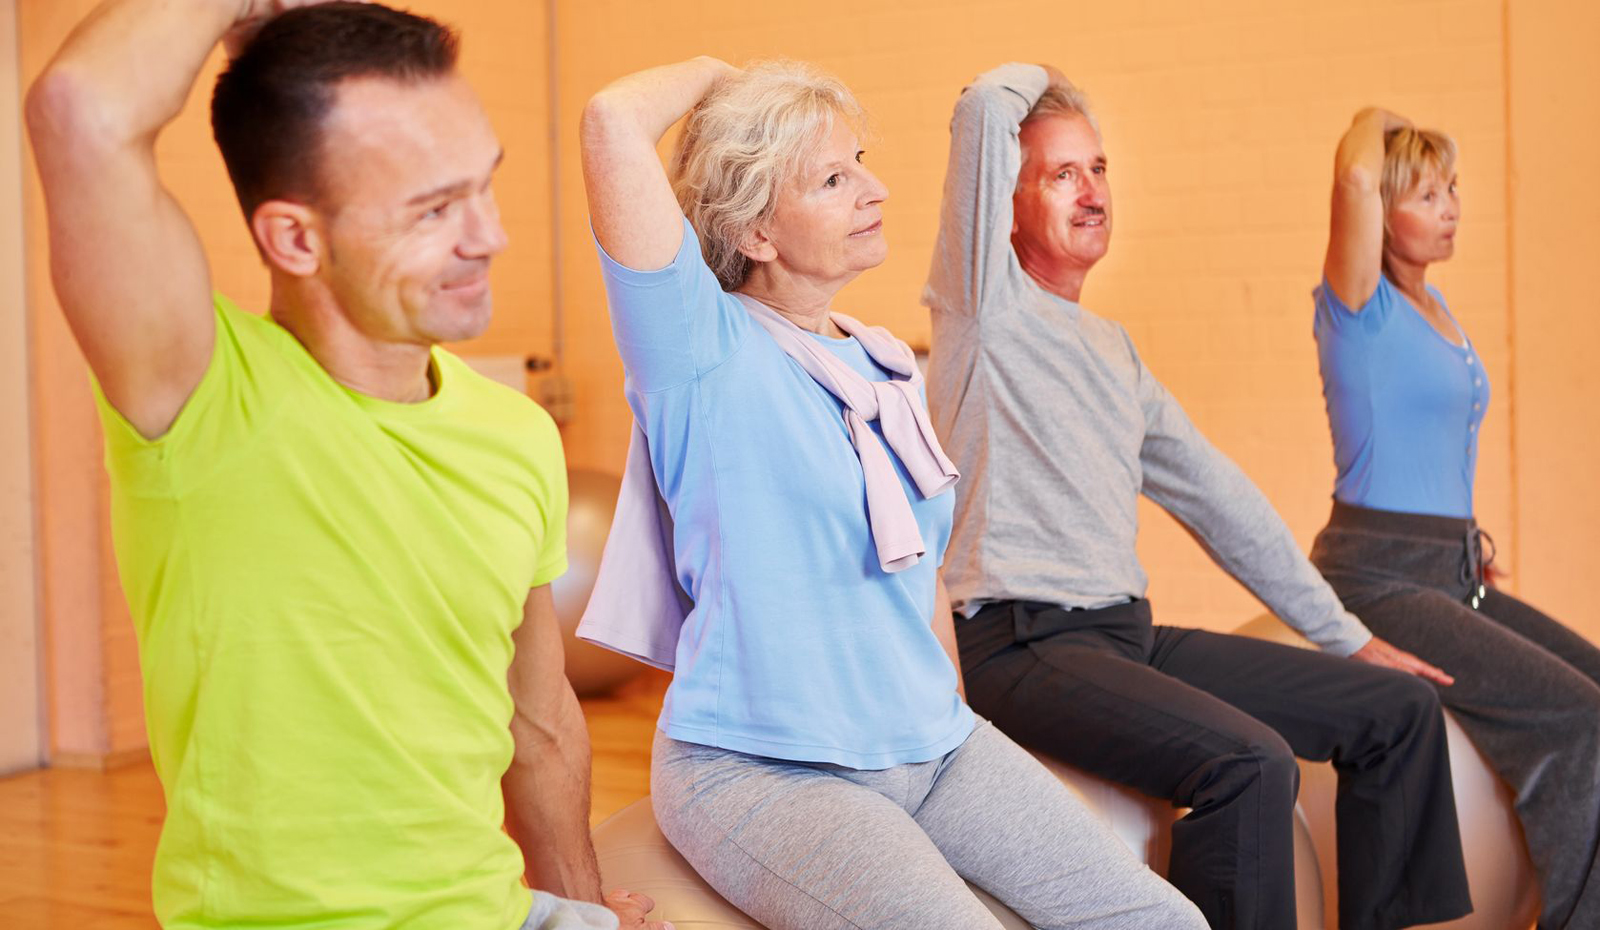 <div class='slider_caption'>		 <h1>If you're looking for personal attention, engaging fun, and a competent staff to help you become all you can be, The Health Club for Seniors is the place for you!</h1>			<a class='slider-readmore' href='http://agingwithgraceinfo.org/health-wellness/'>Read More</a>